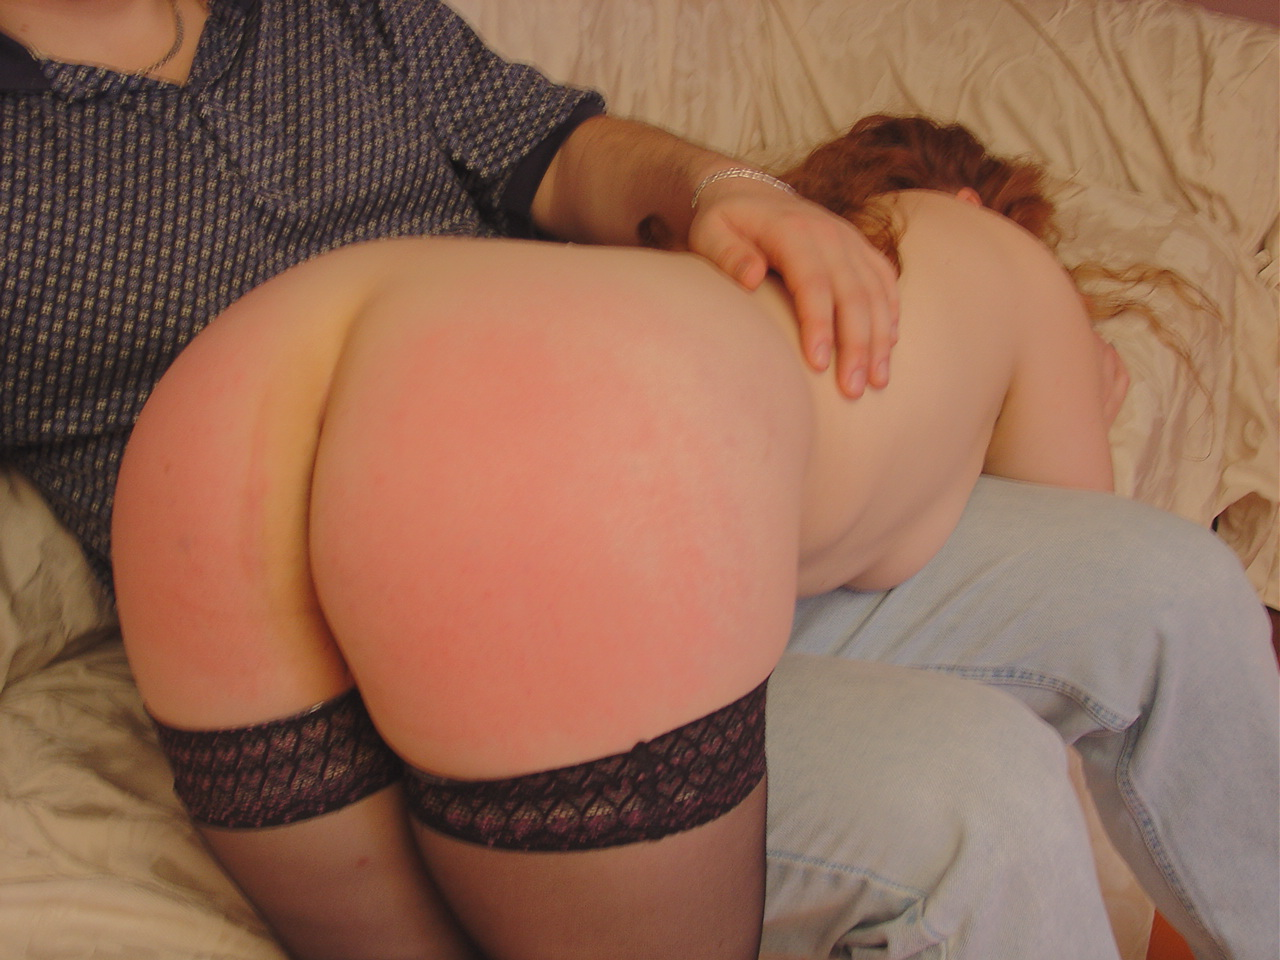 Spanking Video: Claire is Late